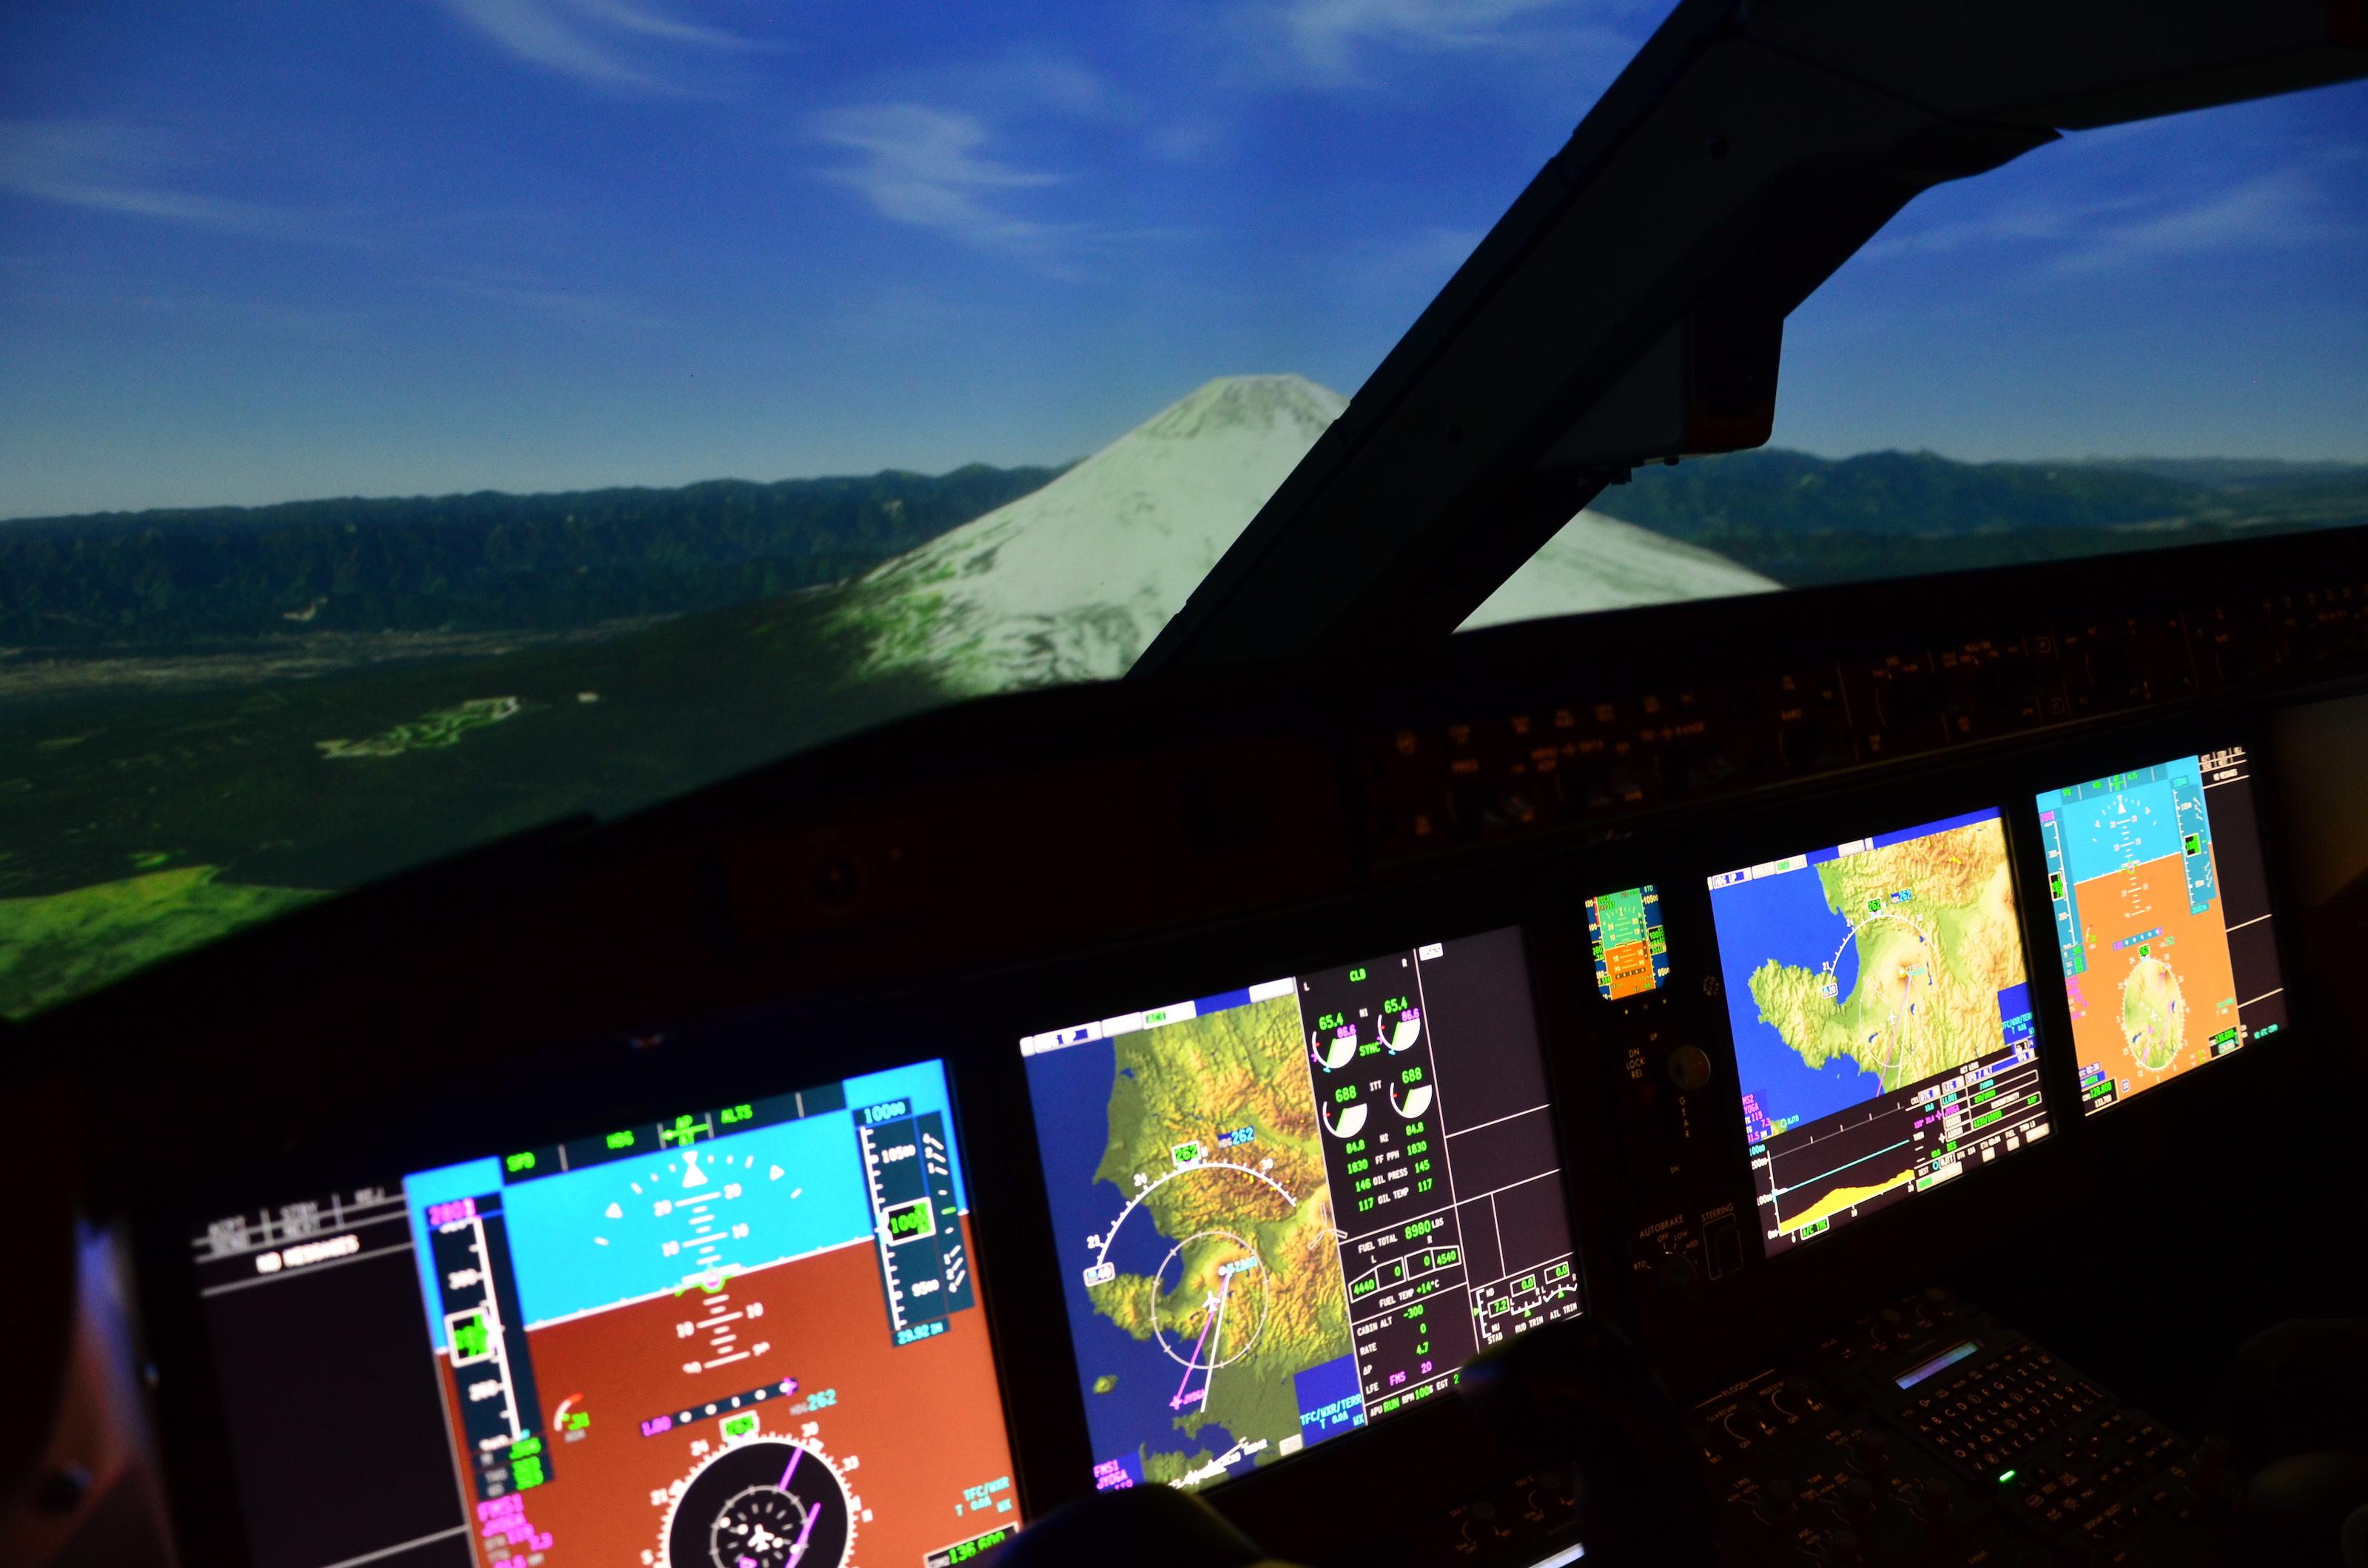 A view of Japan's Mt. Fuji from the virtual flight deck of Mitsubishi's M90 SpaceJet simulator.